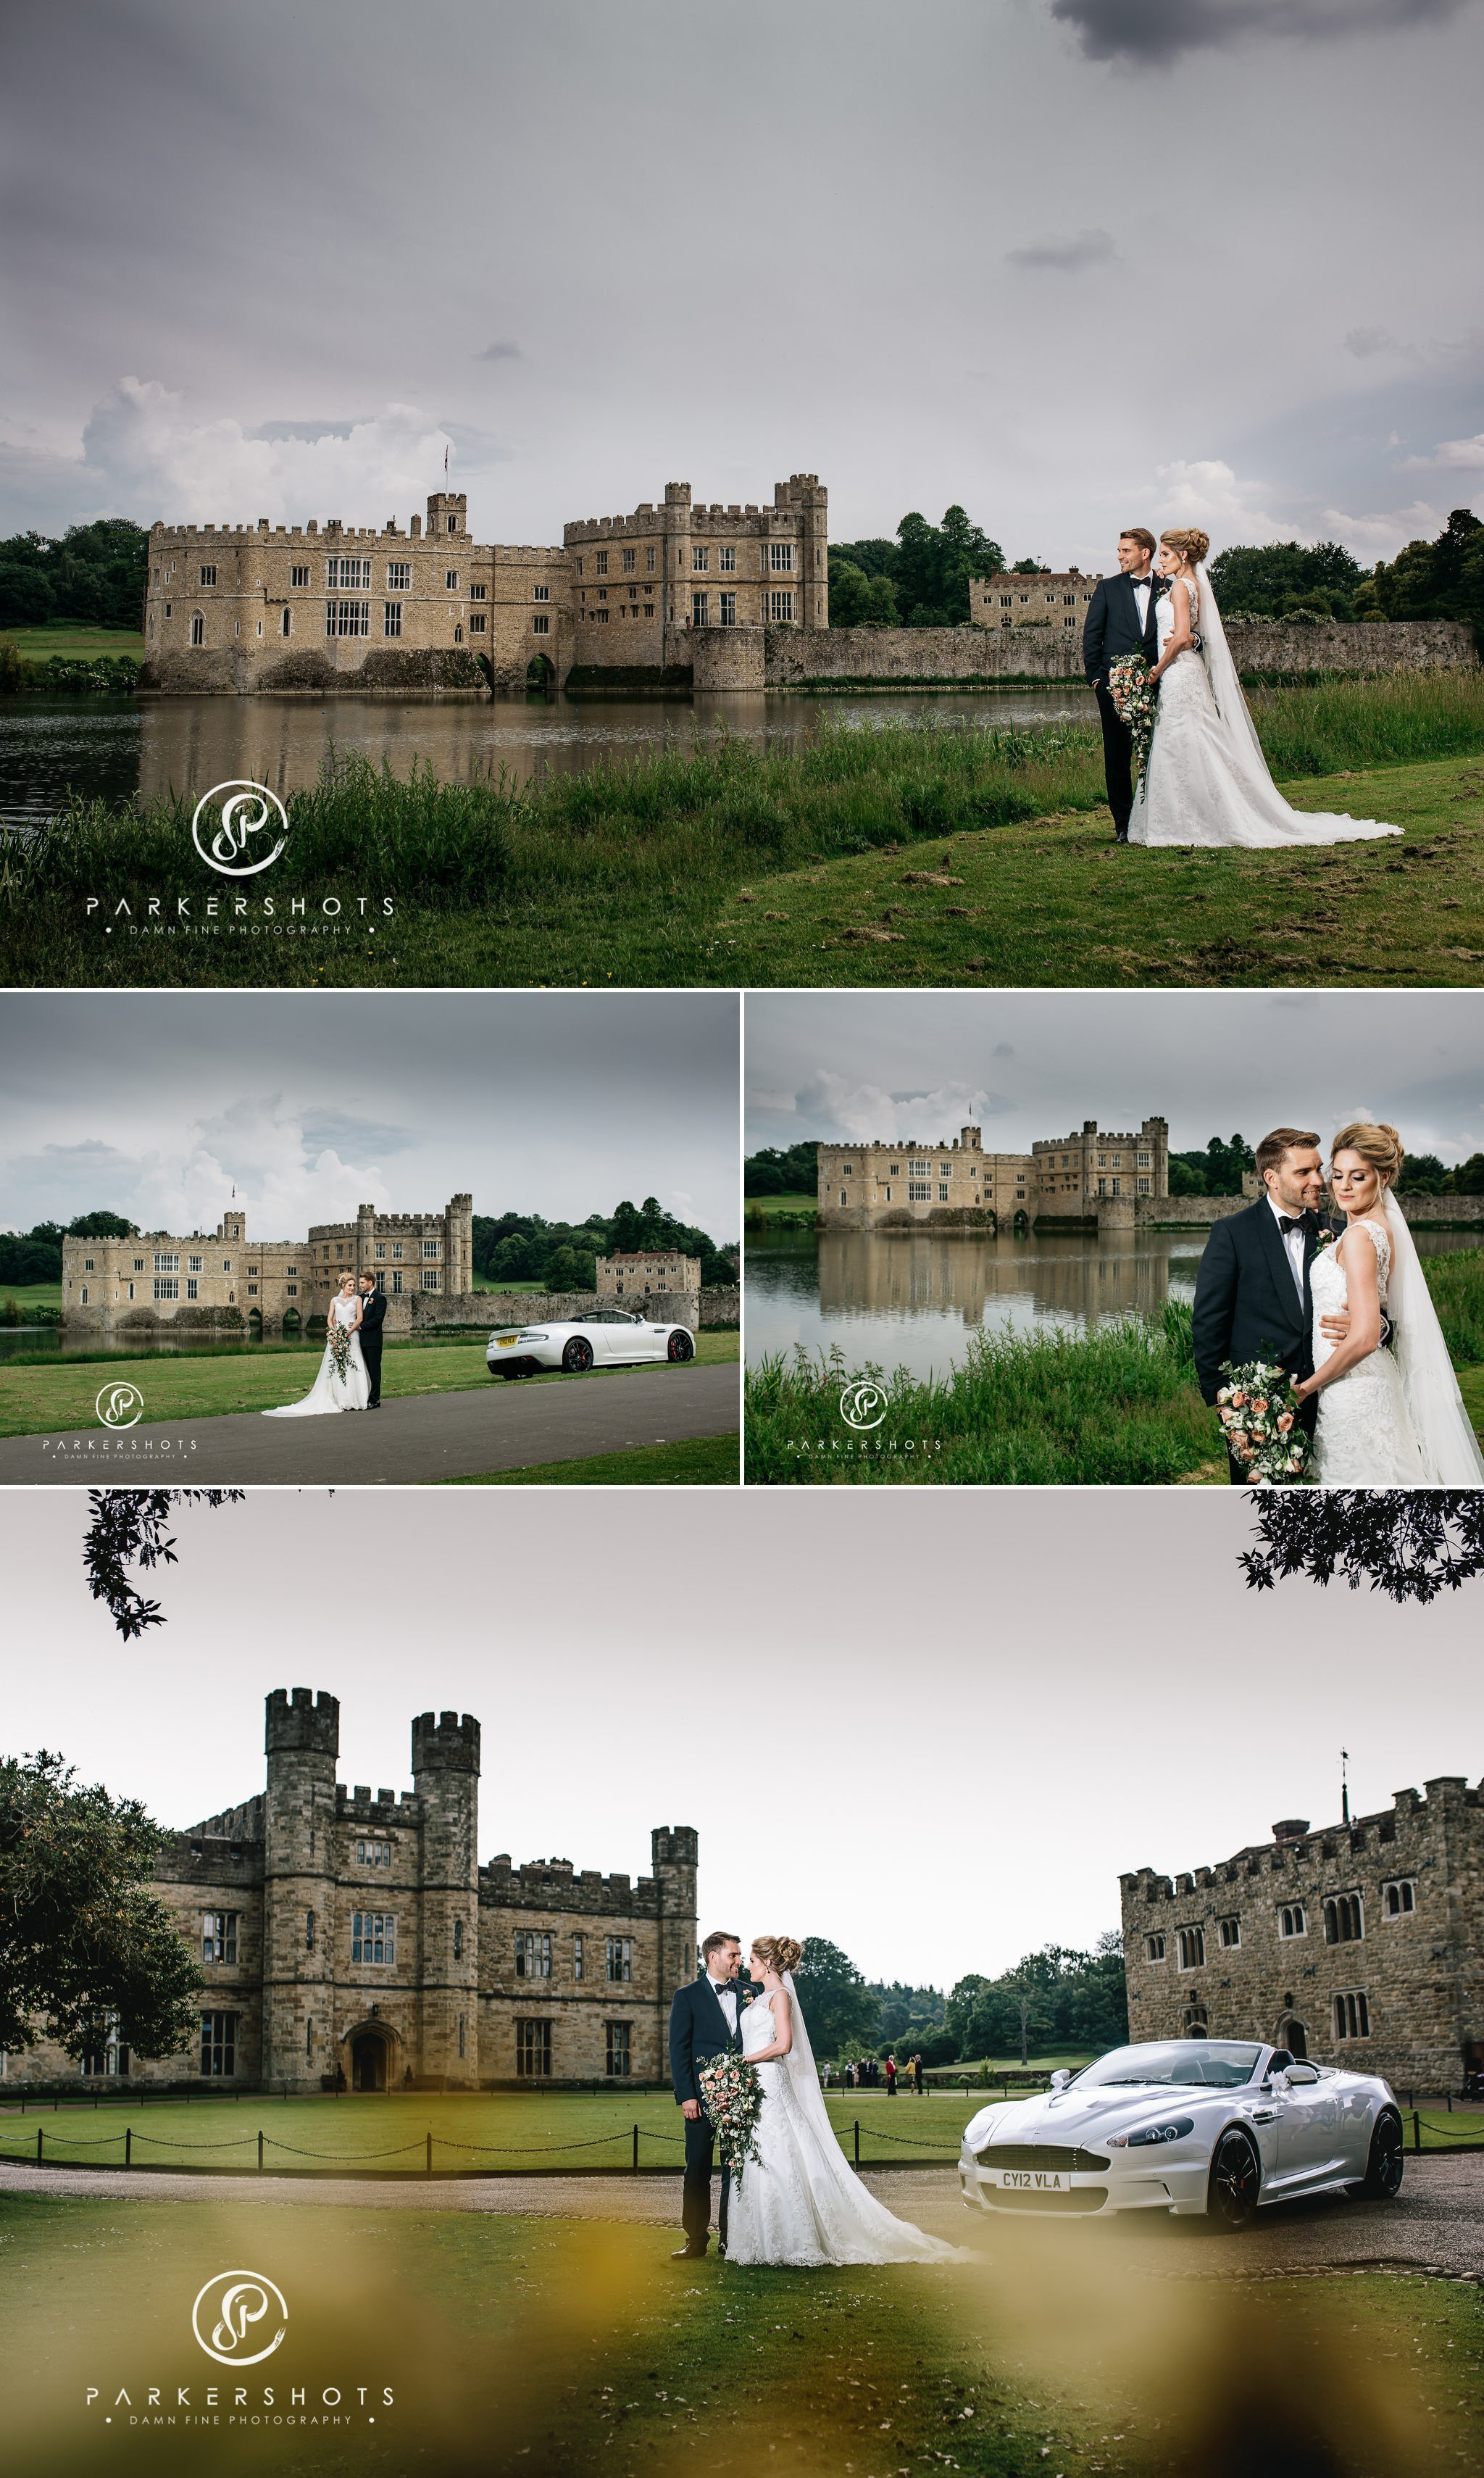 Amazing wedding photography at Leeds Castle